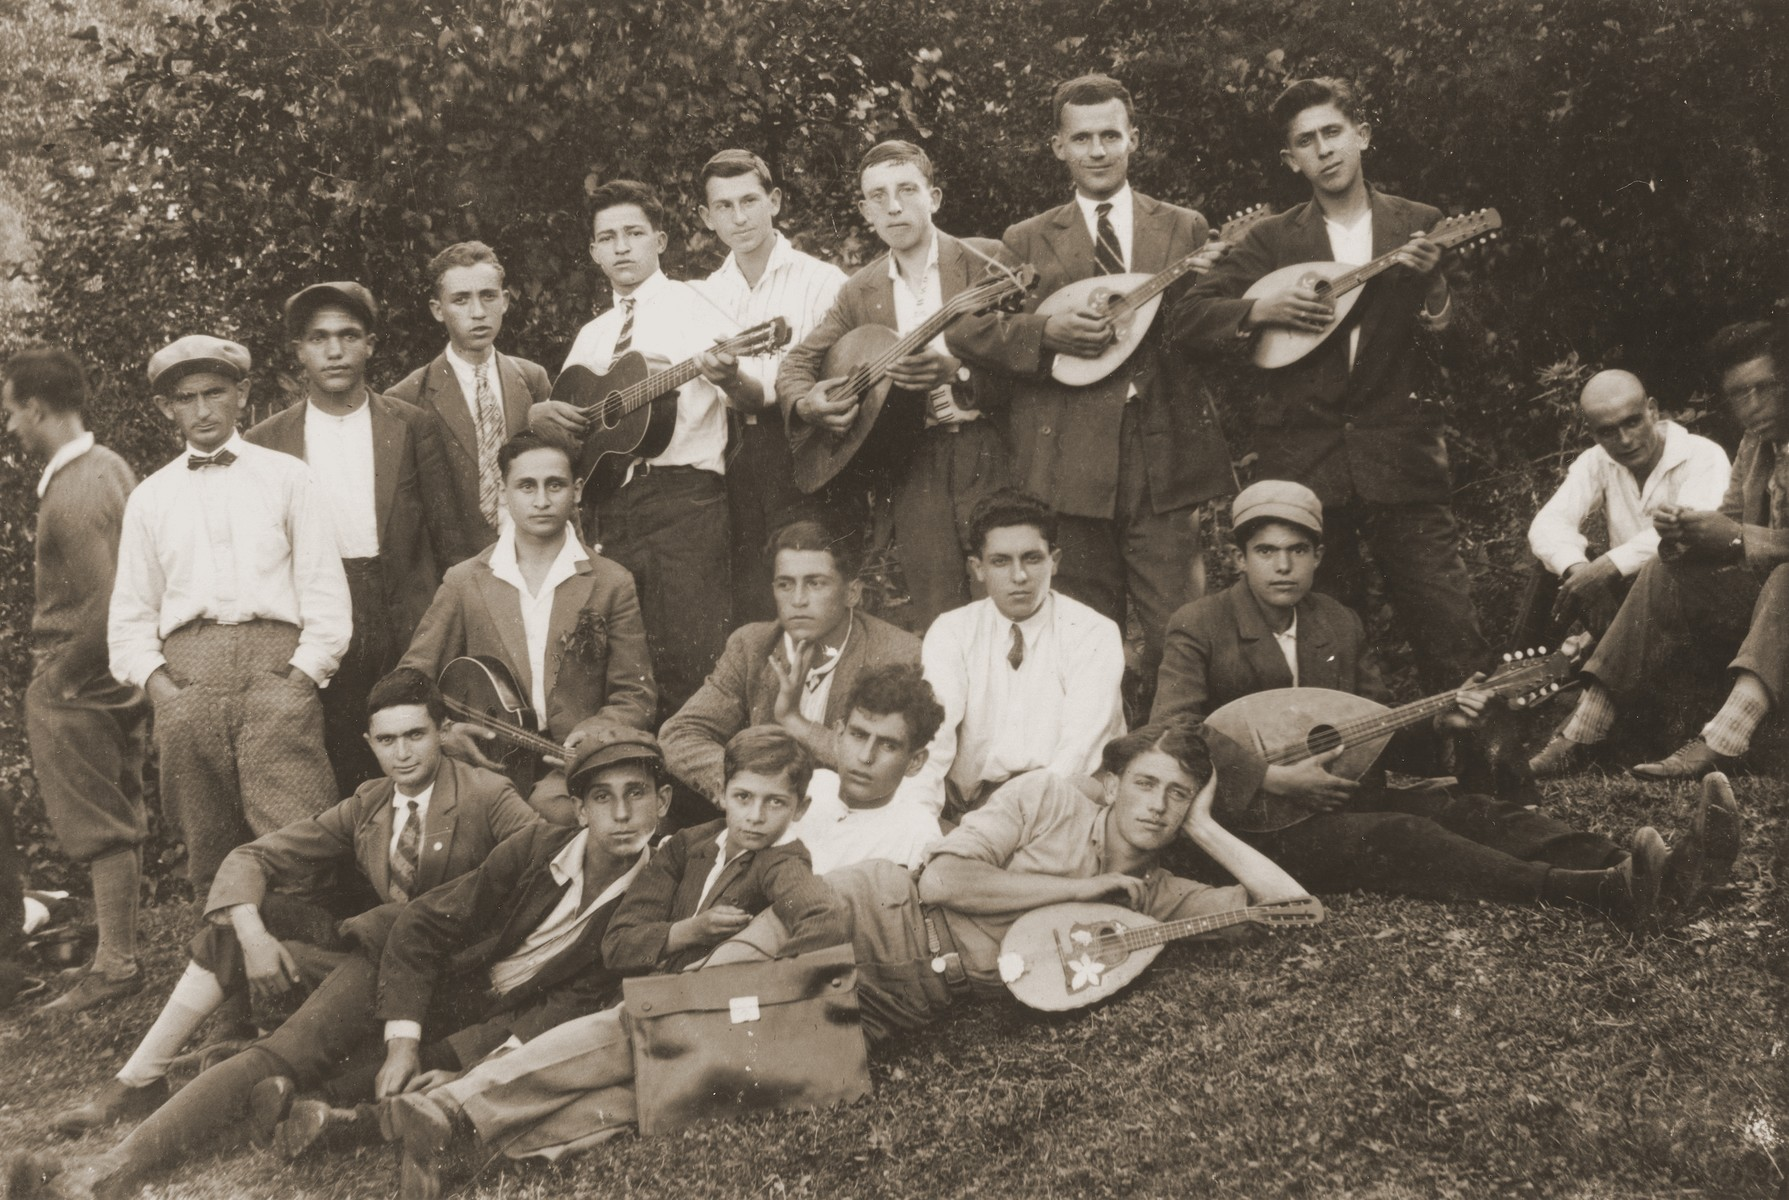 A group of Macedonian Jewish youth who are members of a mandolin band pose on a grassy hillside in Bitola, Macedonia.